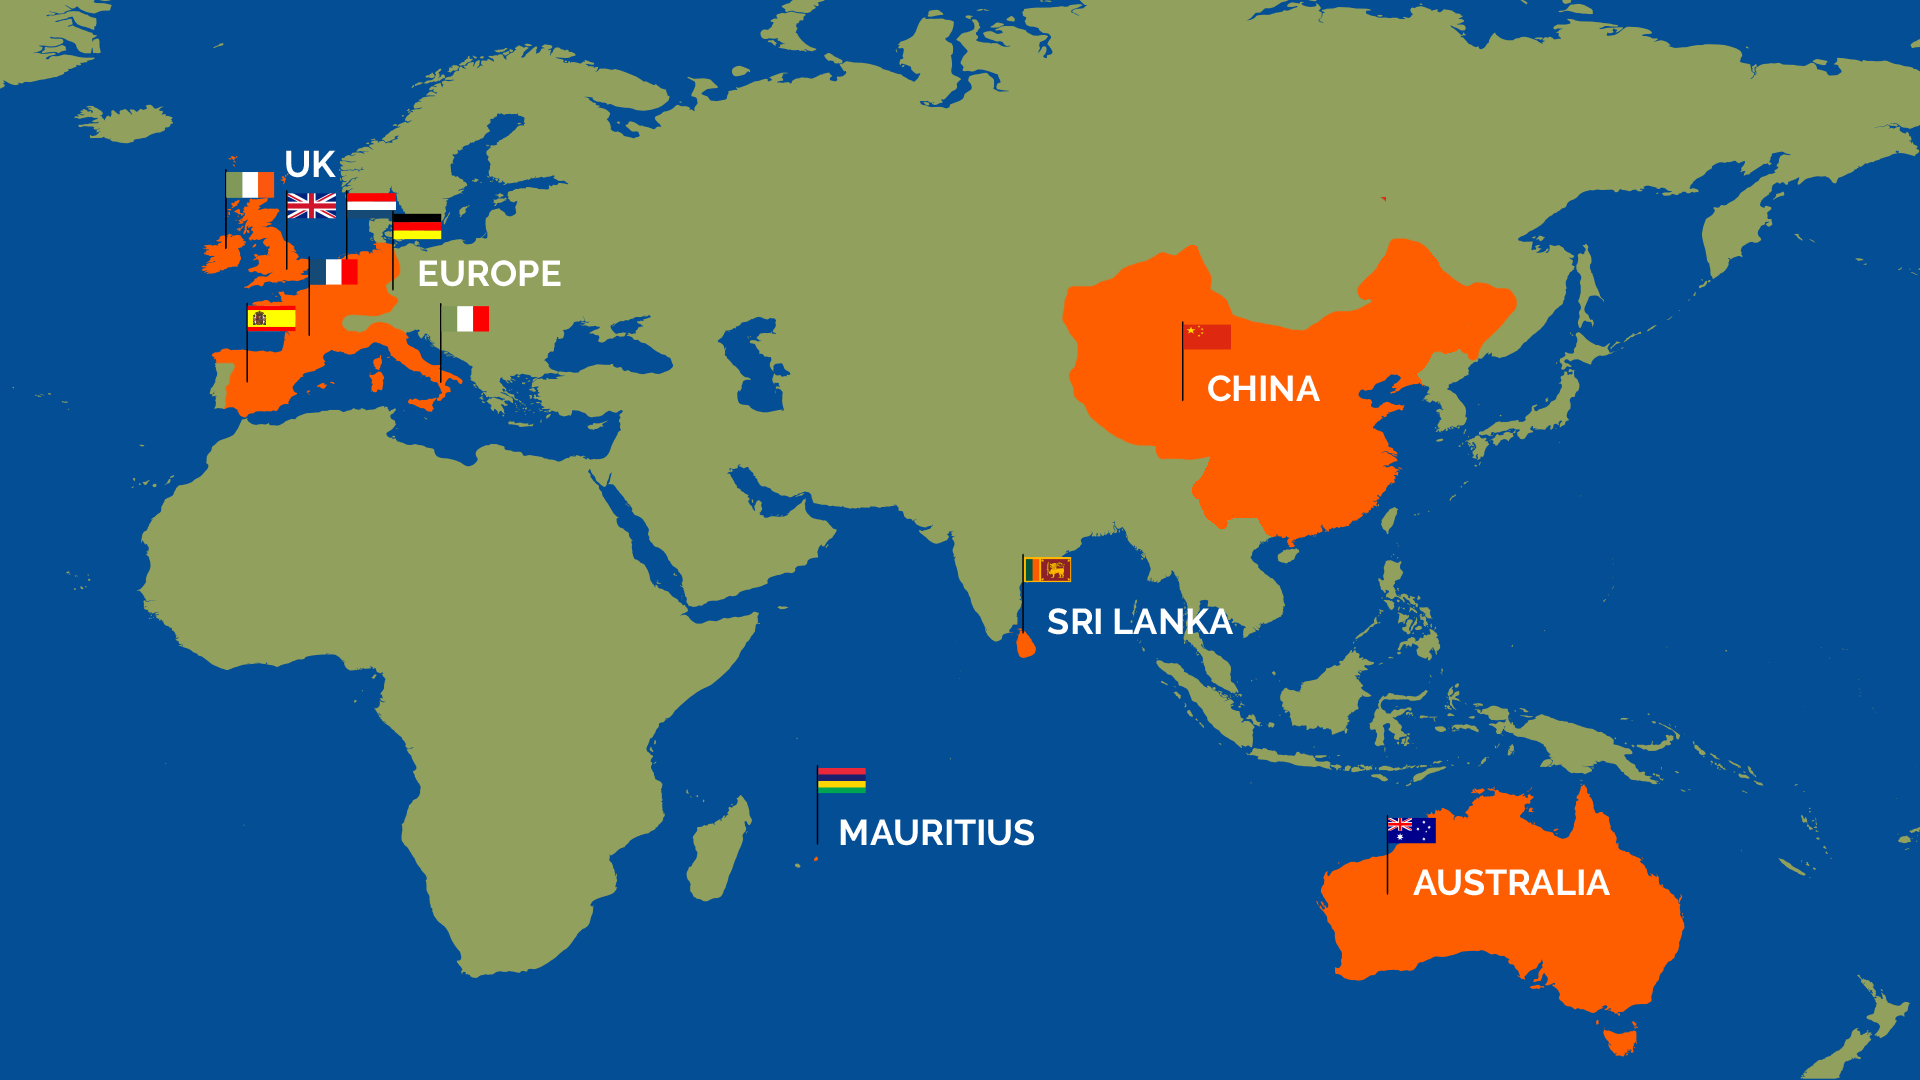 Kinetik has delivered in 11 countries and 23 organisations